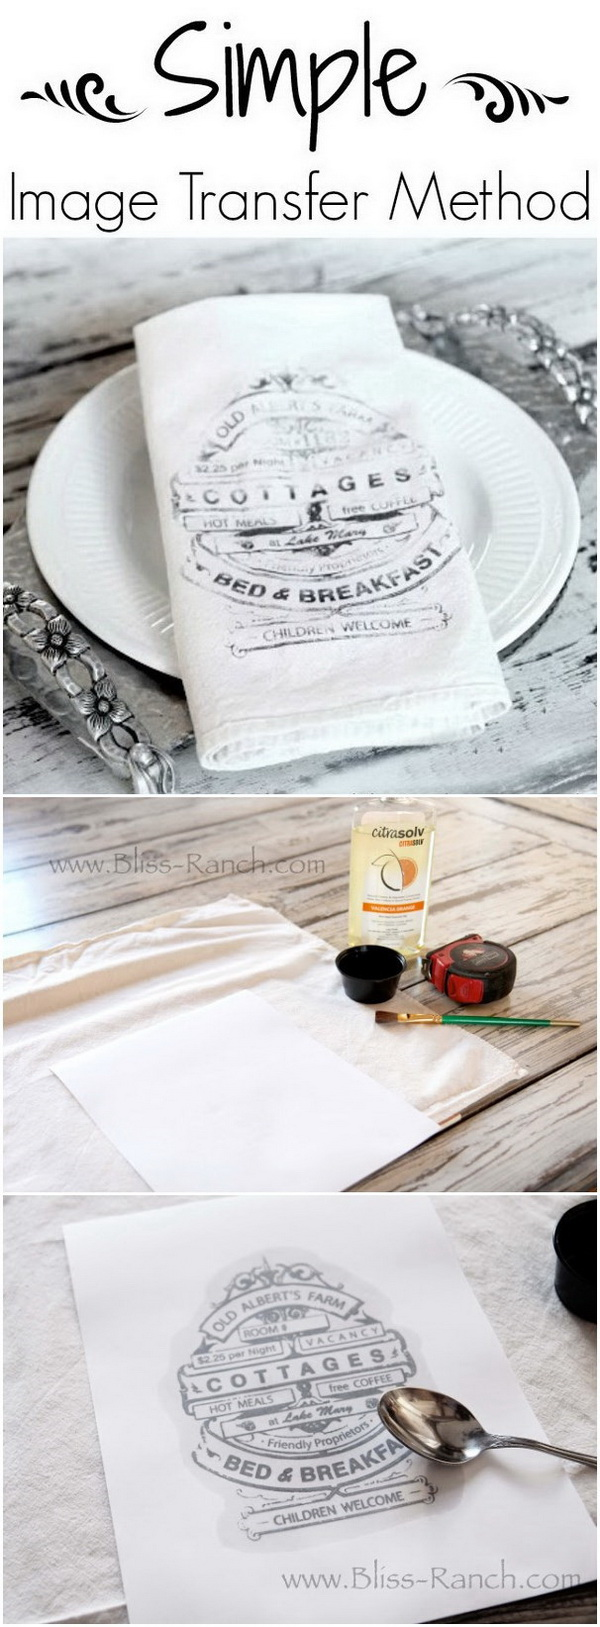 DIY Dinner Napkin Image Transfer.